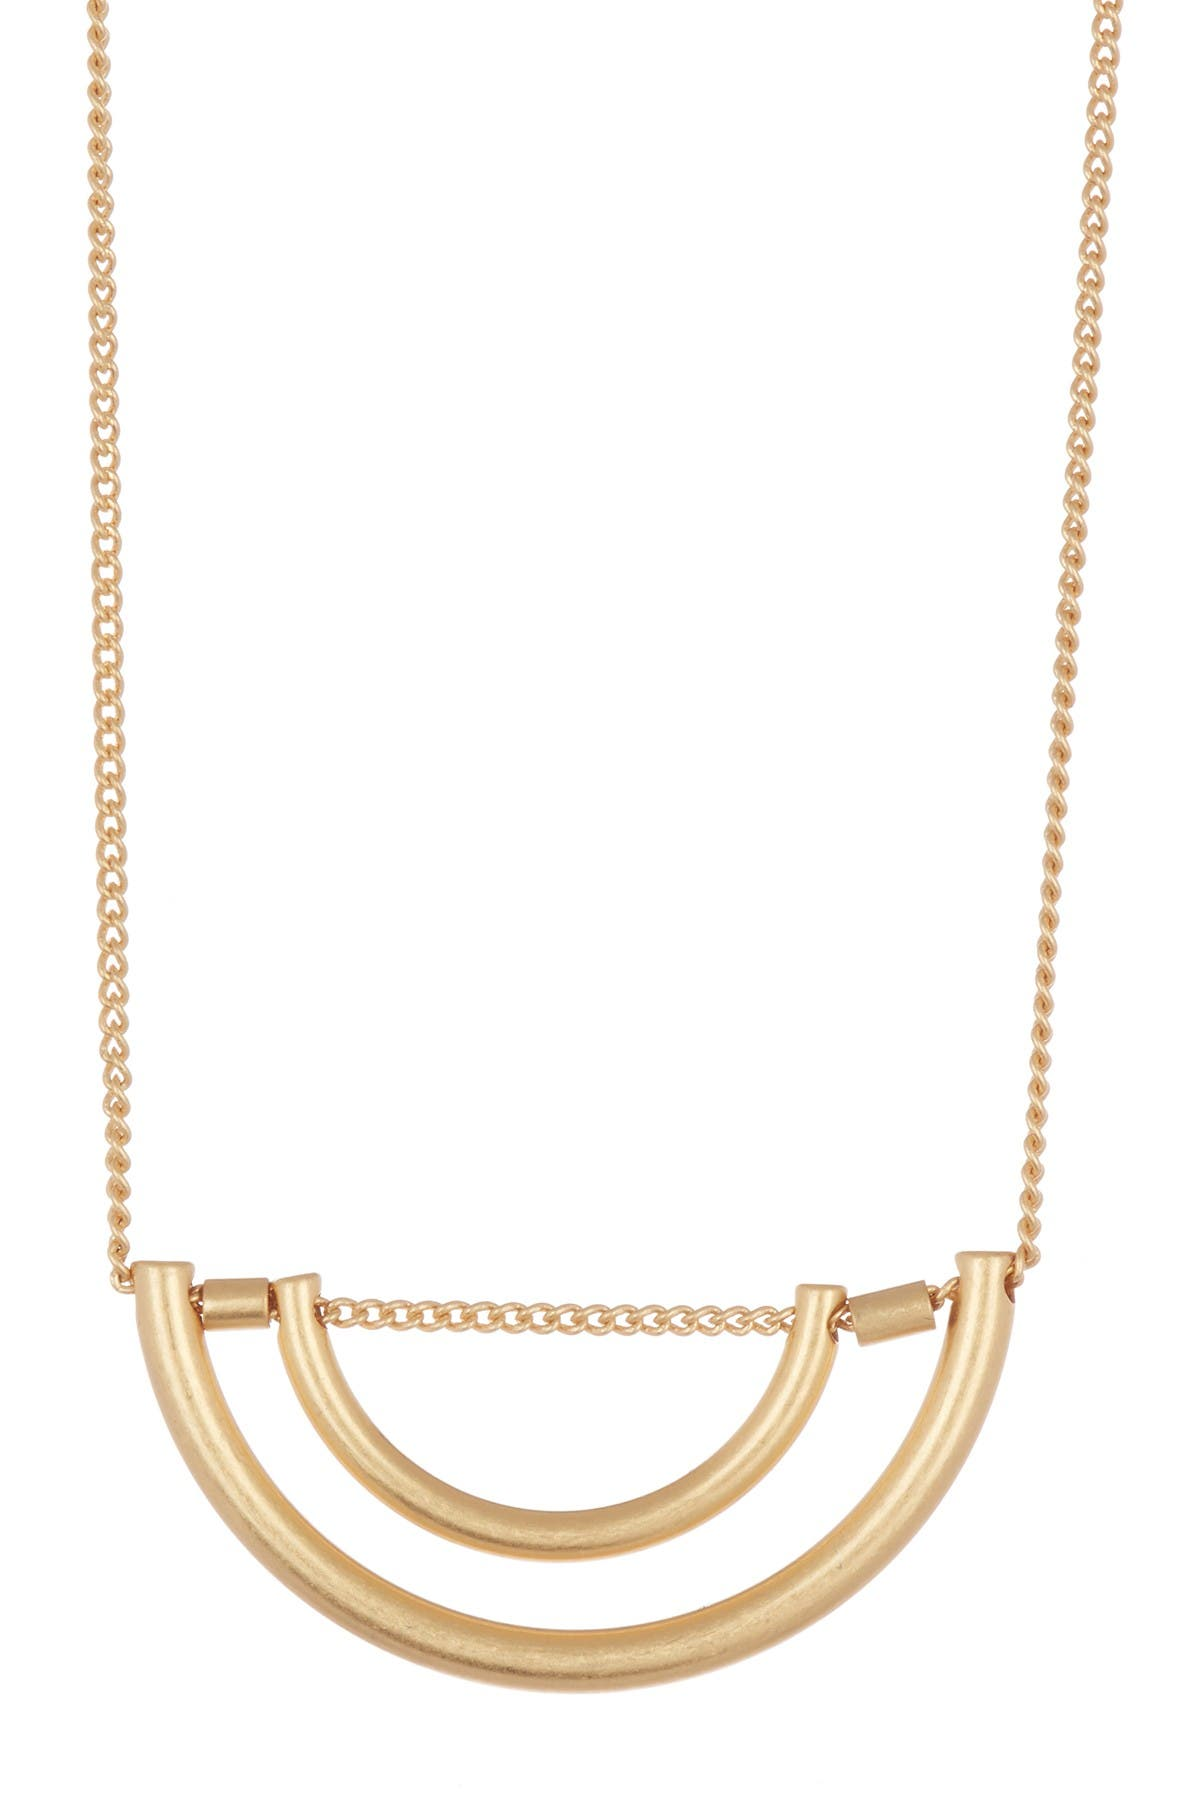 Image of Madewell Skycloud Necklace